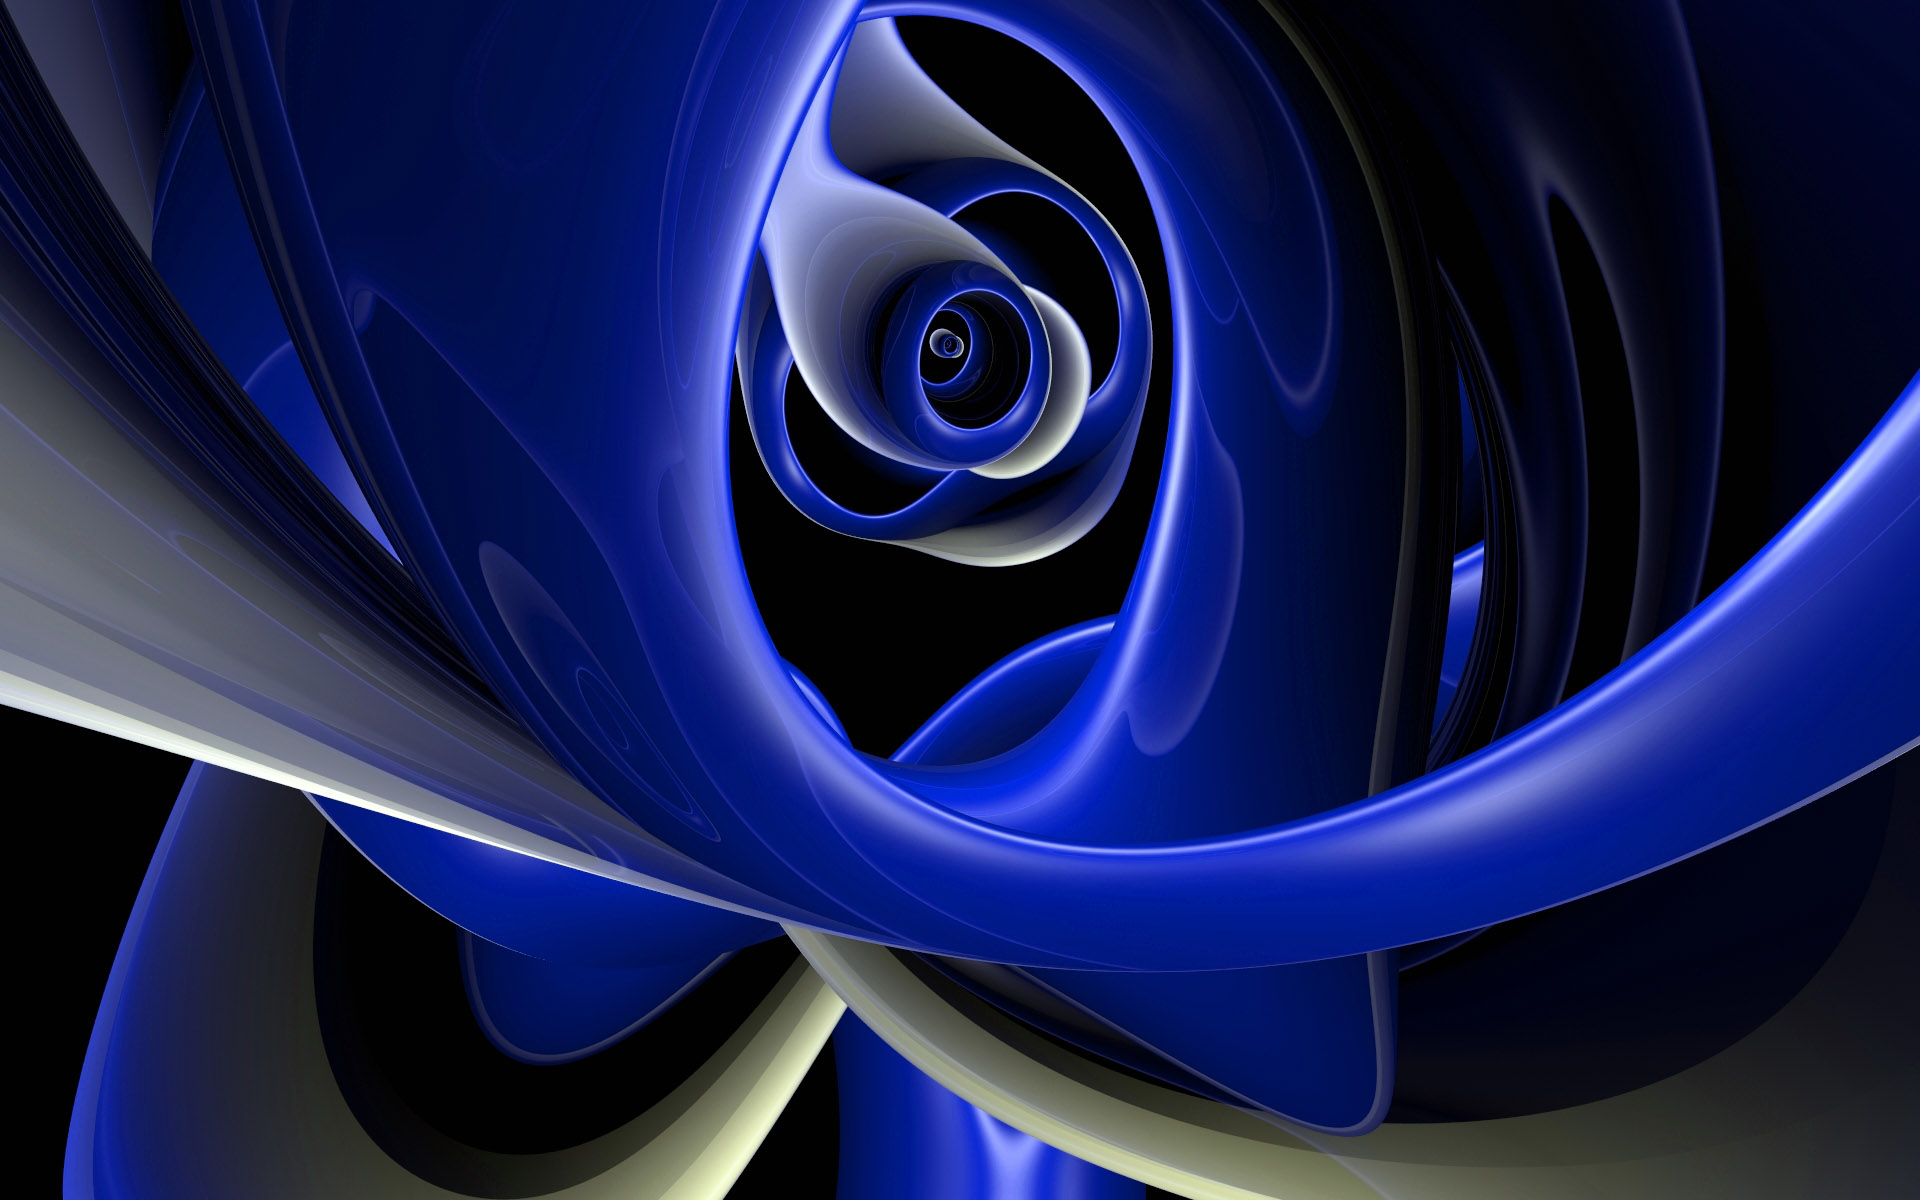 Classic Design wallpapers 14111